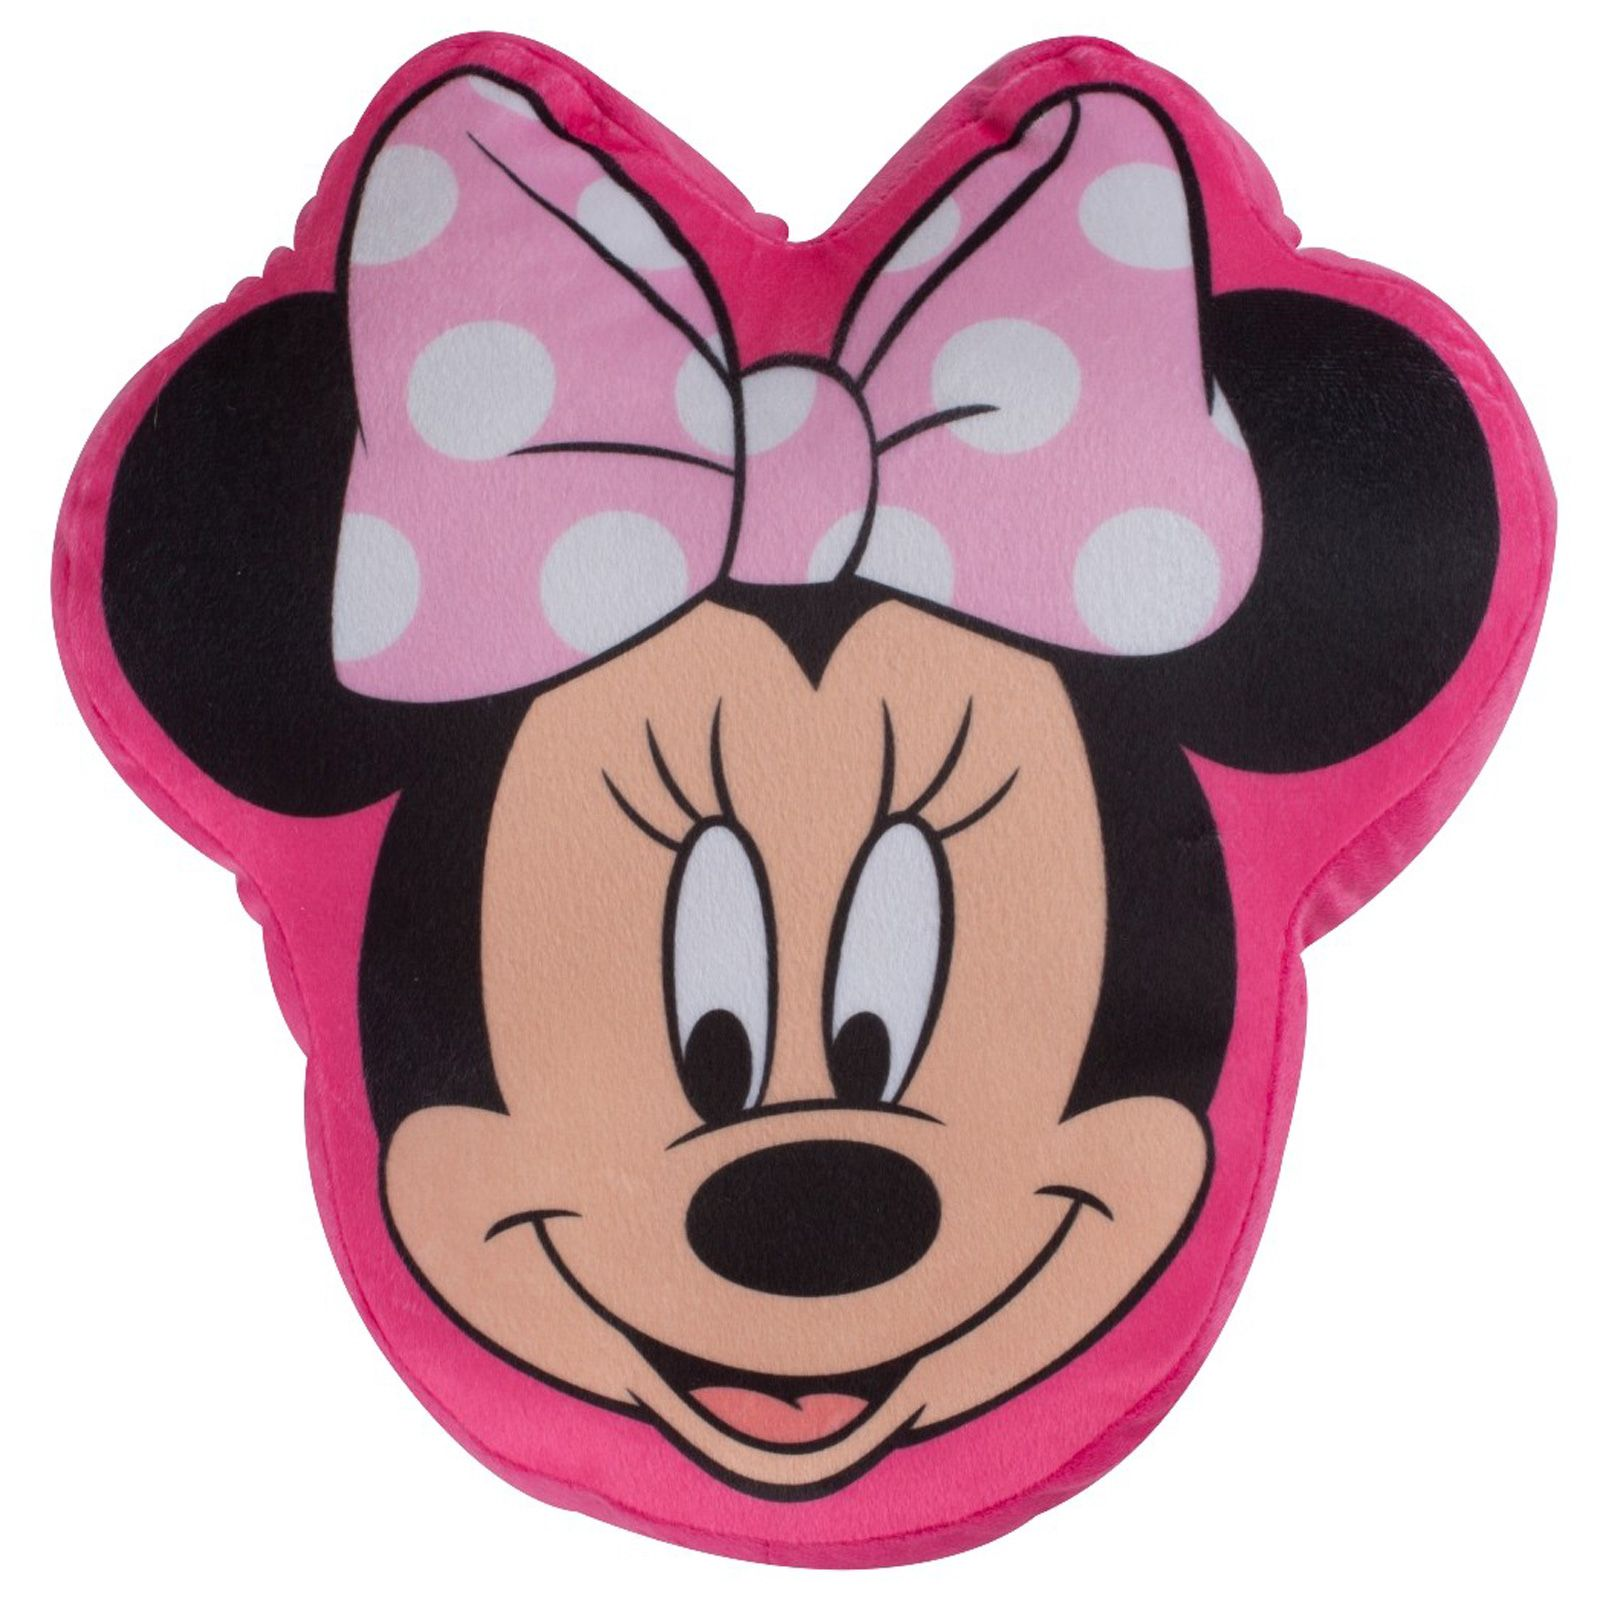 minnie mouse 50% off all patterned tableware shop for minnie mouse ideas themed party supplies, favors, balloons, decorations and invitations for your upcoming bash at birthday.